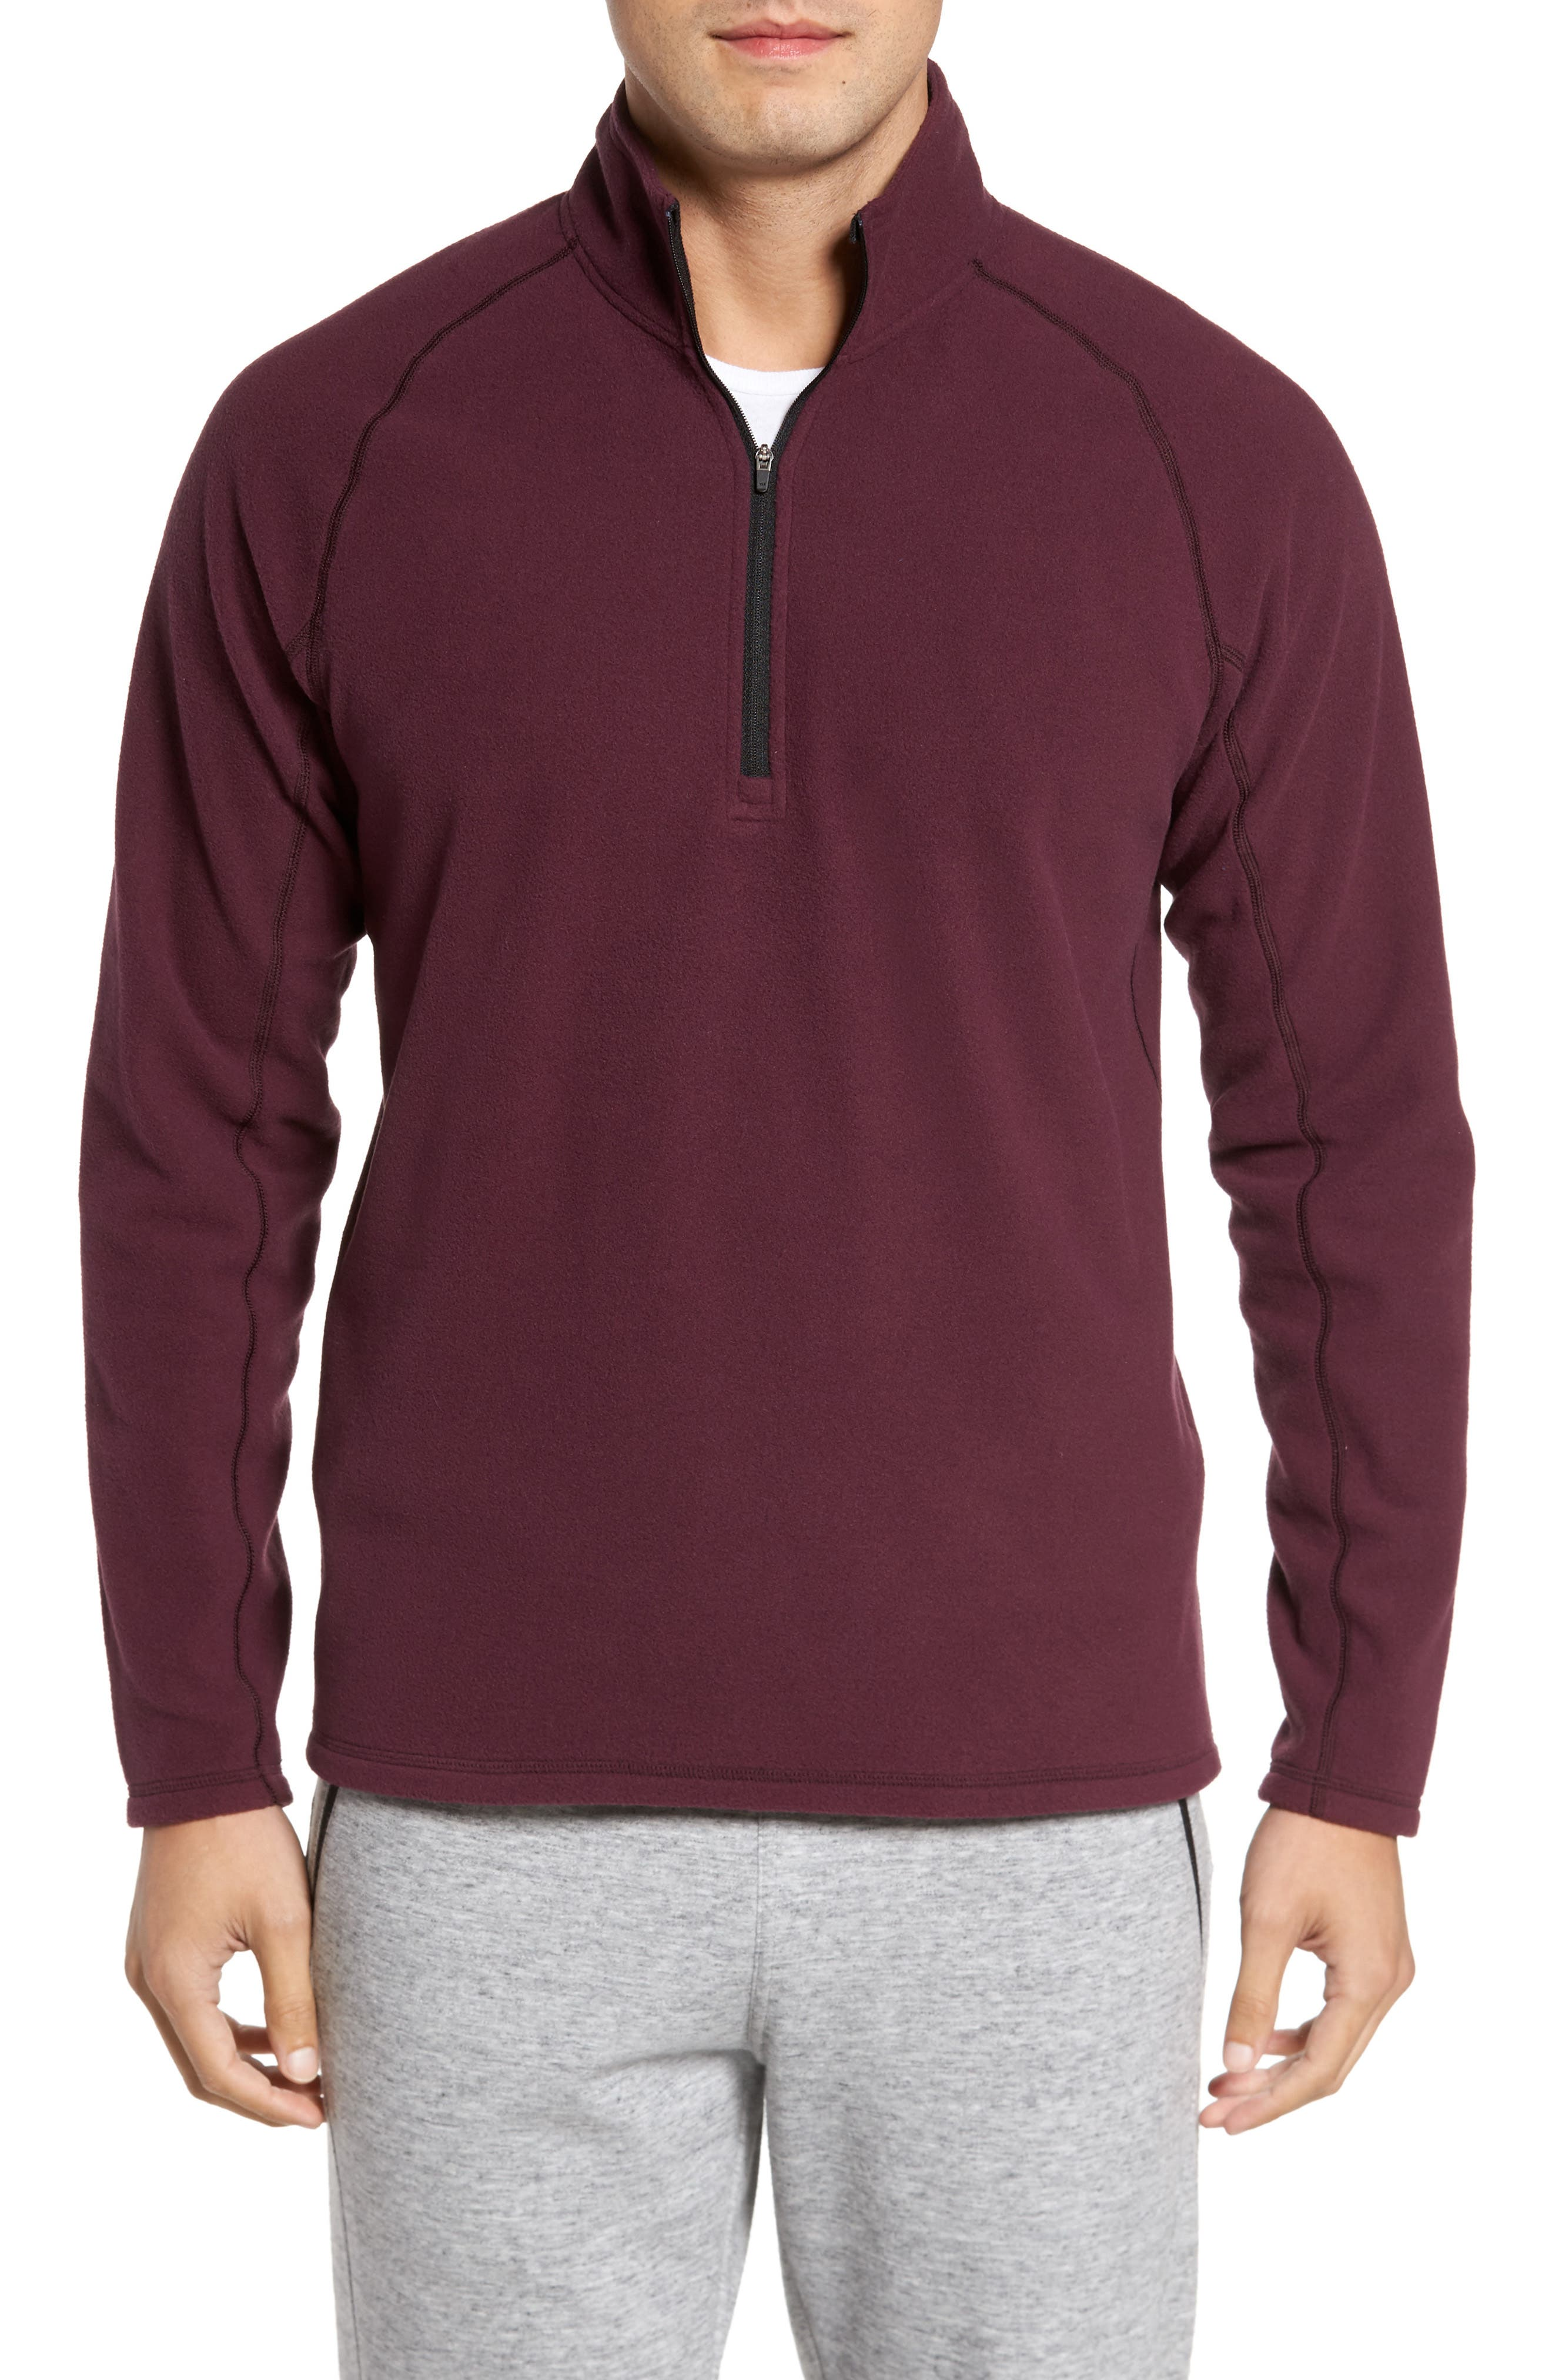 Quarter Zip Fleece Pullover,                         Main,                         color, Burgundy Oxide